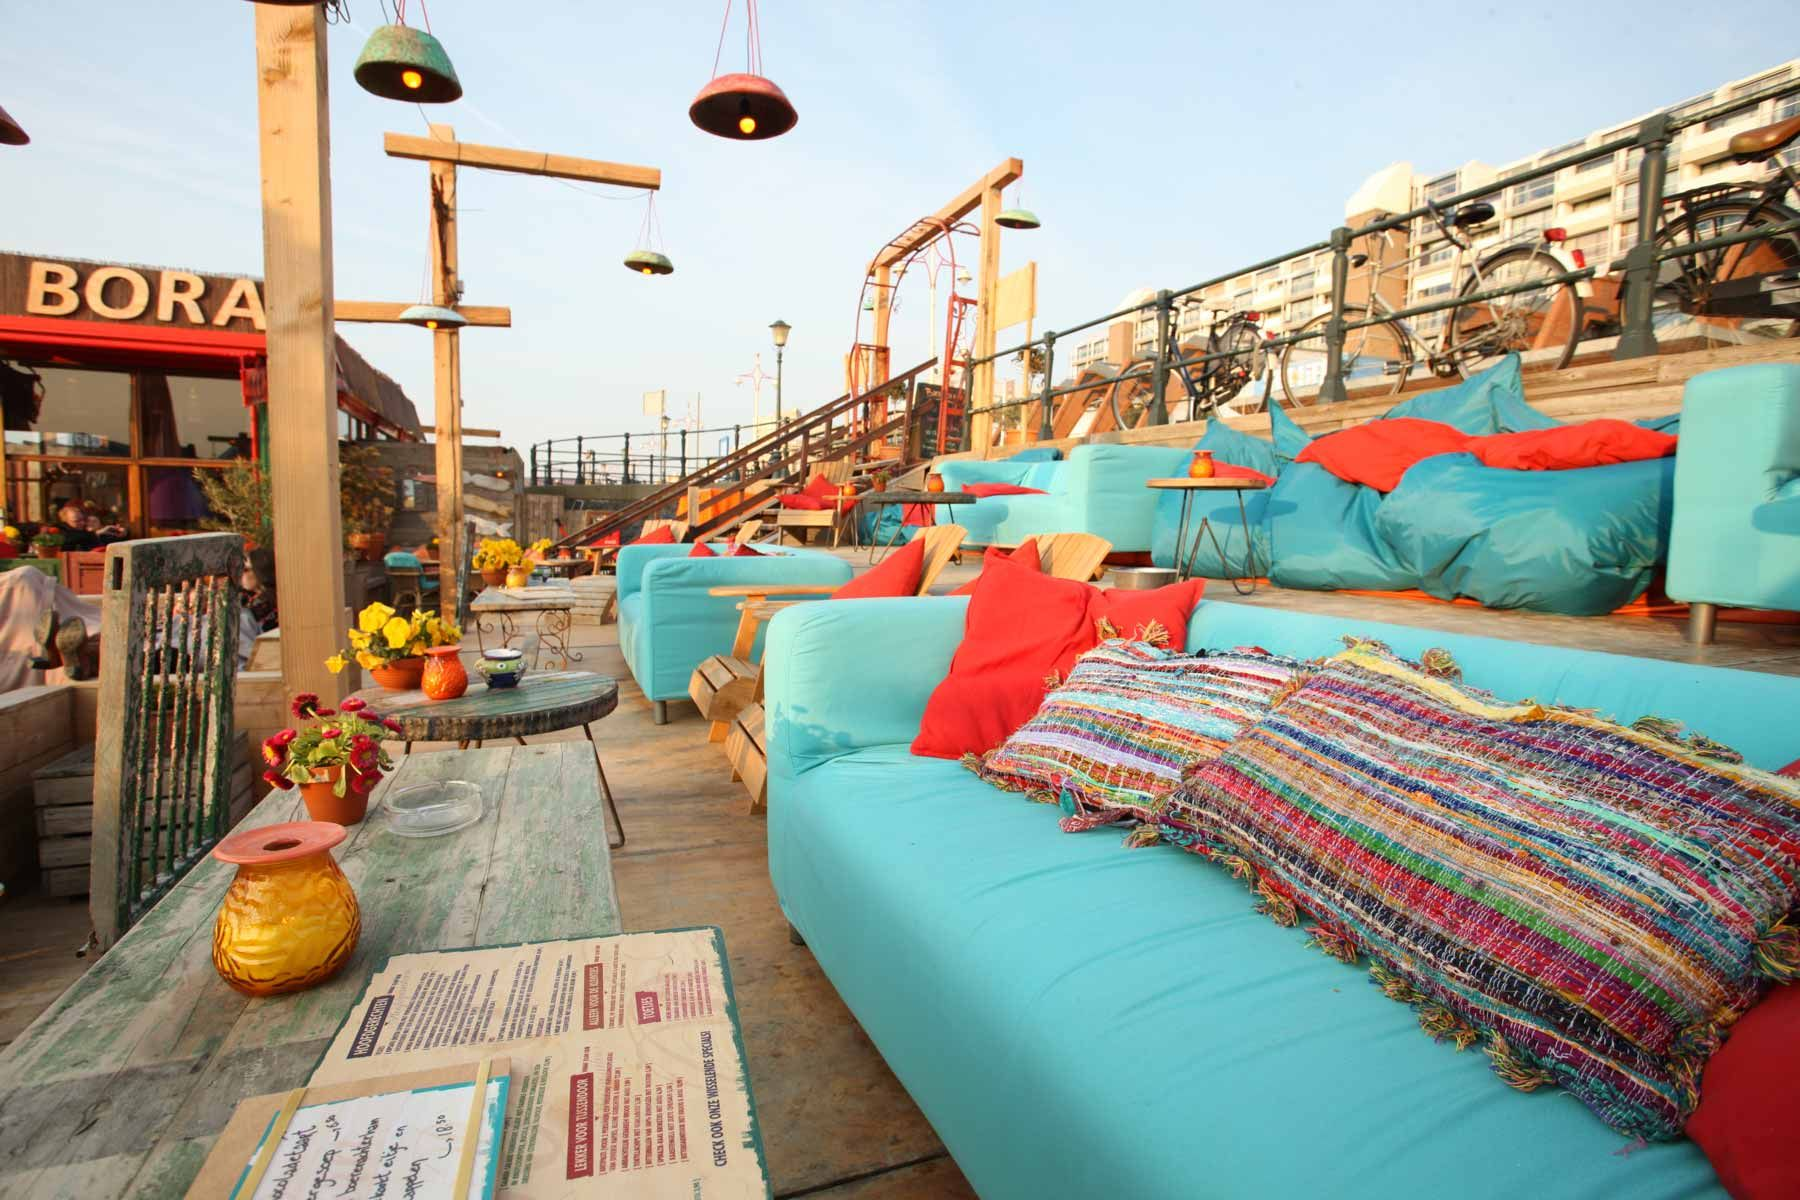 Scheveningen Beach Restaurants Beachclub Bora Bora Scheveningen Beach Bubbles